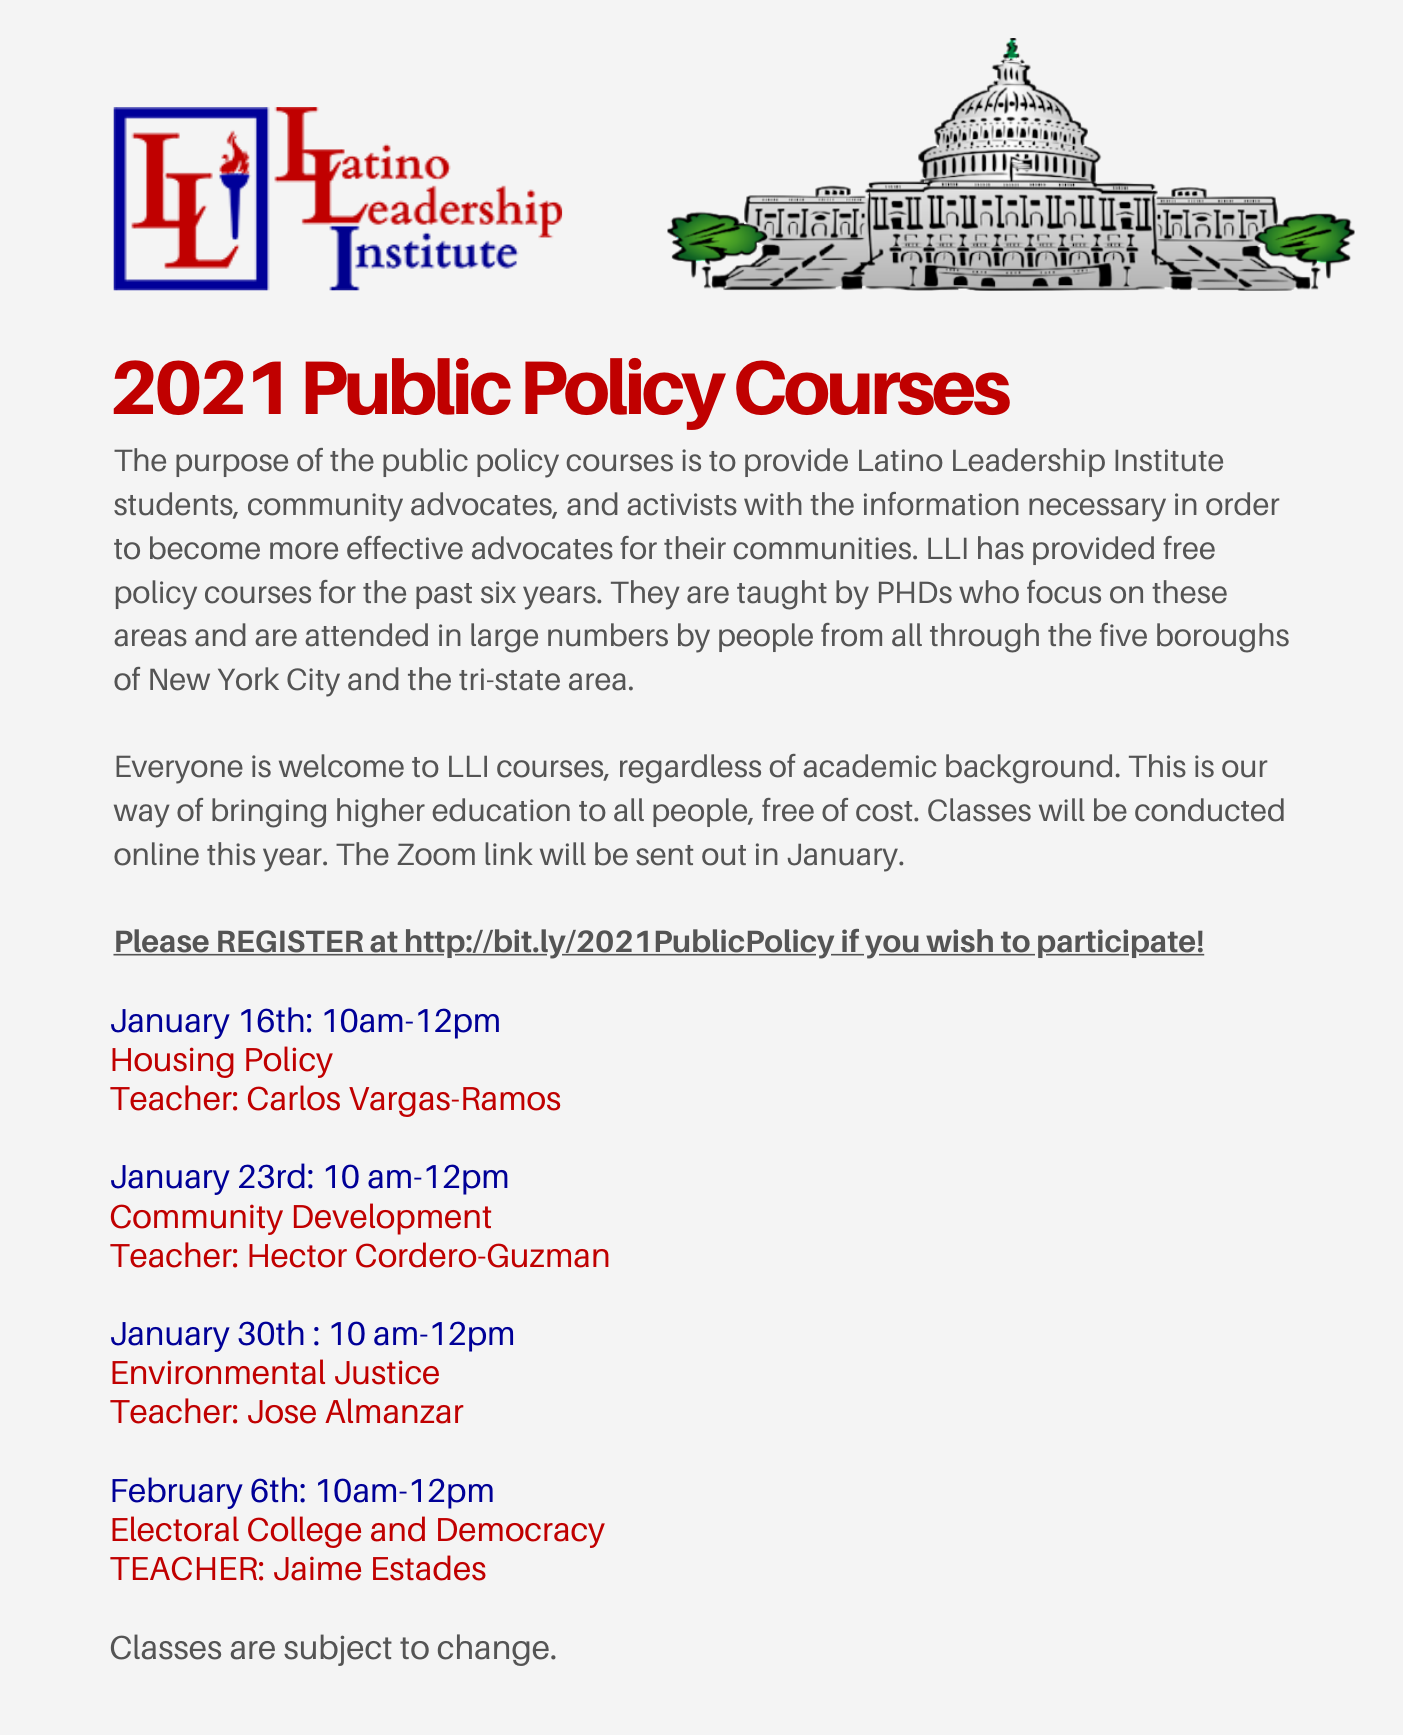 Public Policy Courses Week 2